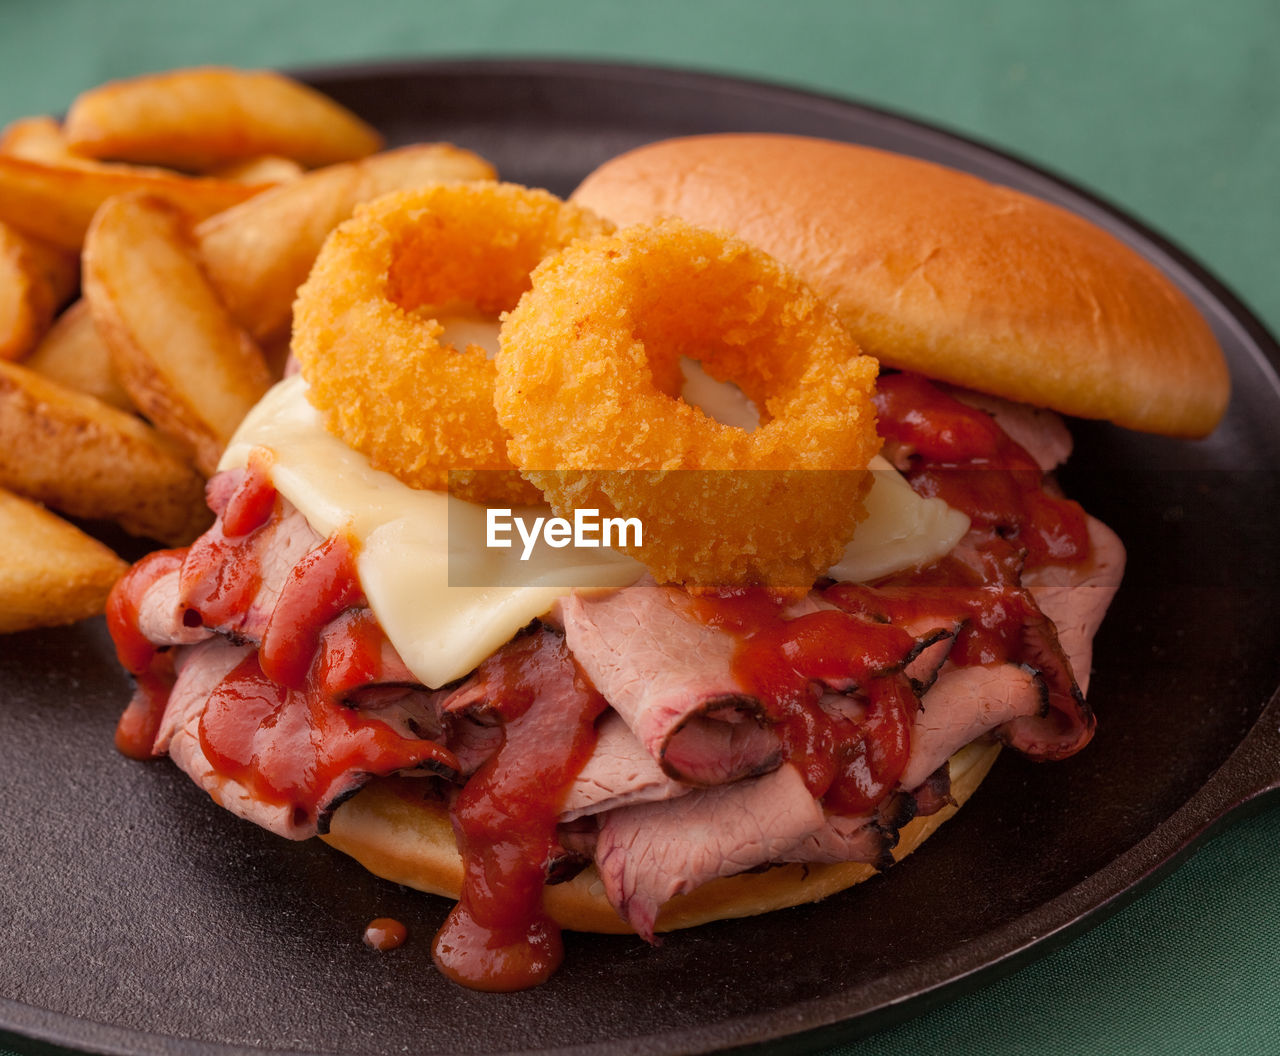 High Angle View Of Beef Sandwich On Plate